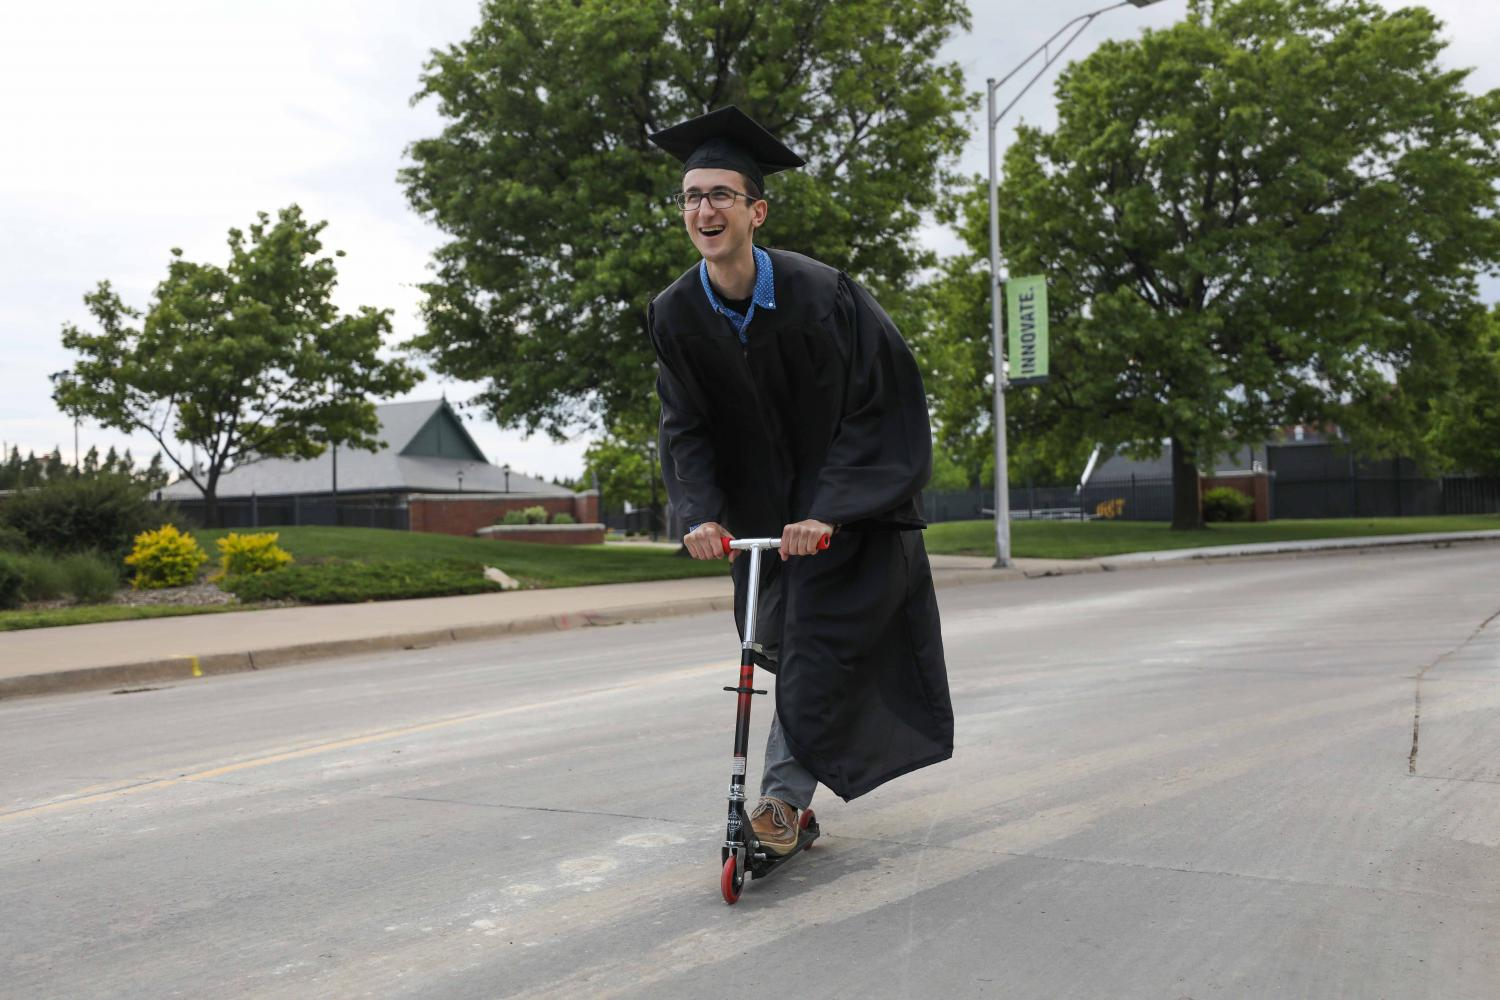 Wichita+State+student+Evan+Pflugradt+blissfully+scoots+his+way+into+graduation.%0APflugradt+bought+his+Star+Wars+themed+scooter+for+%247.50+at+a+Walmart.+